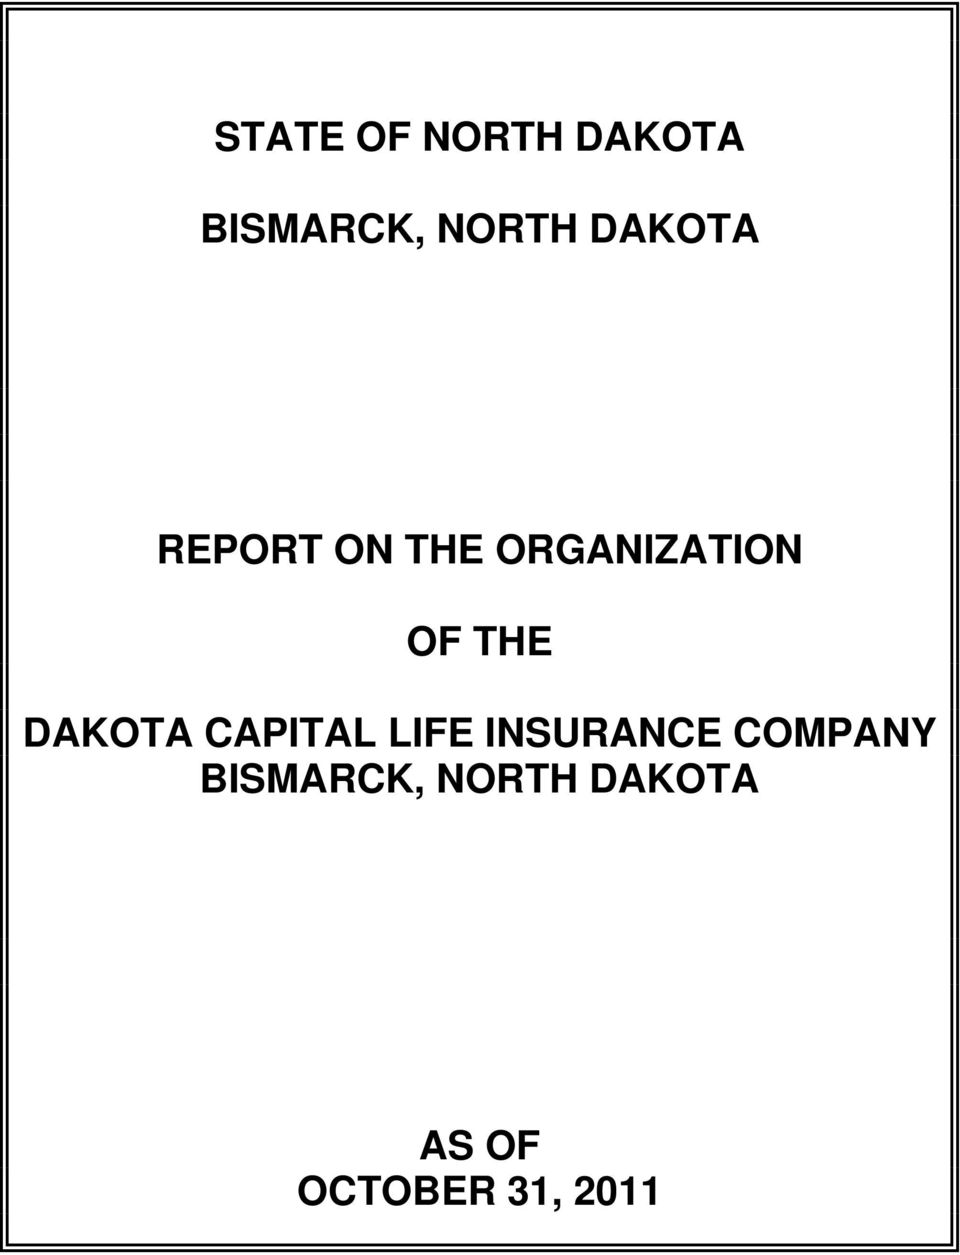 DAKOTA CAPITAL LIFE INSURANCE COMPANY